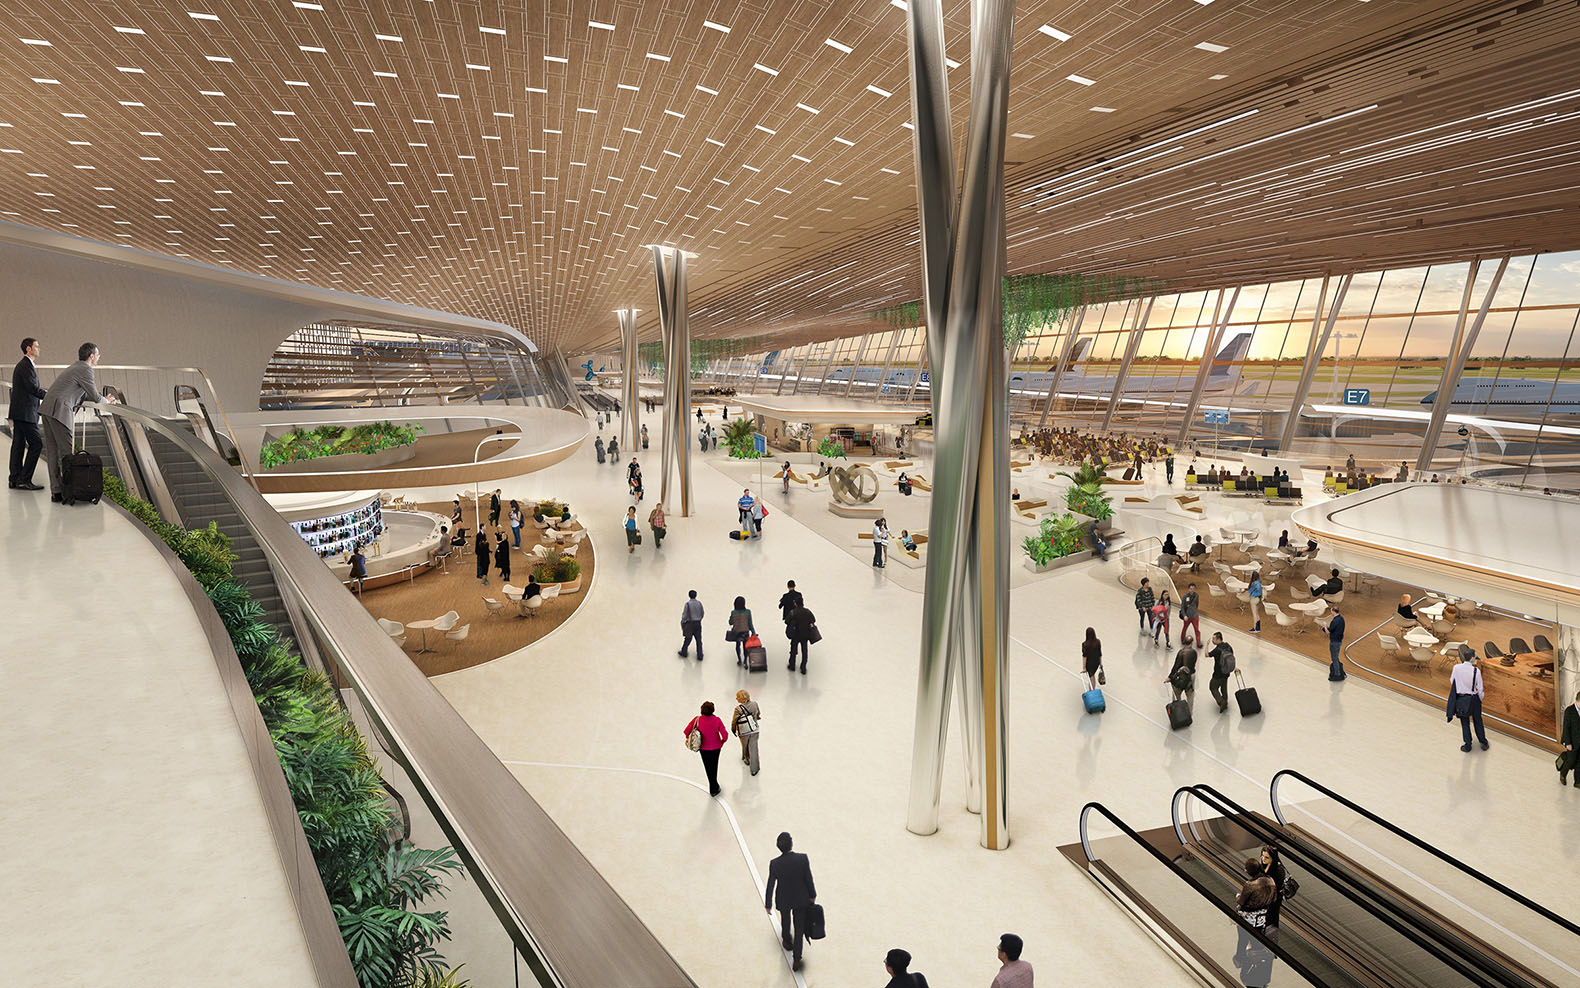 UN Studio's Taiwan Taoyuan Airport imagines the air travel